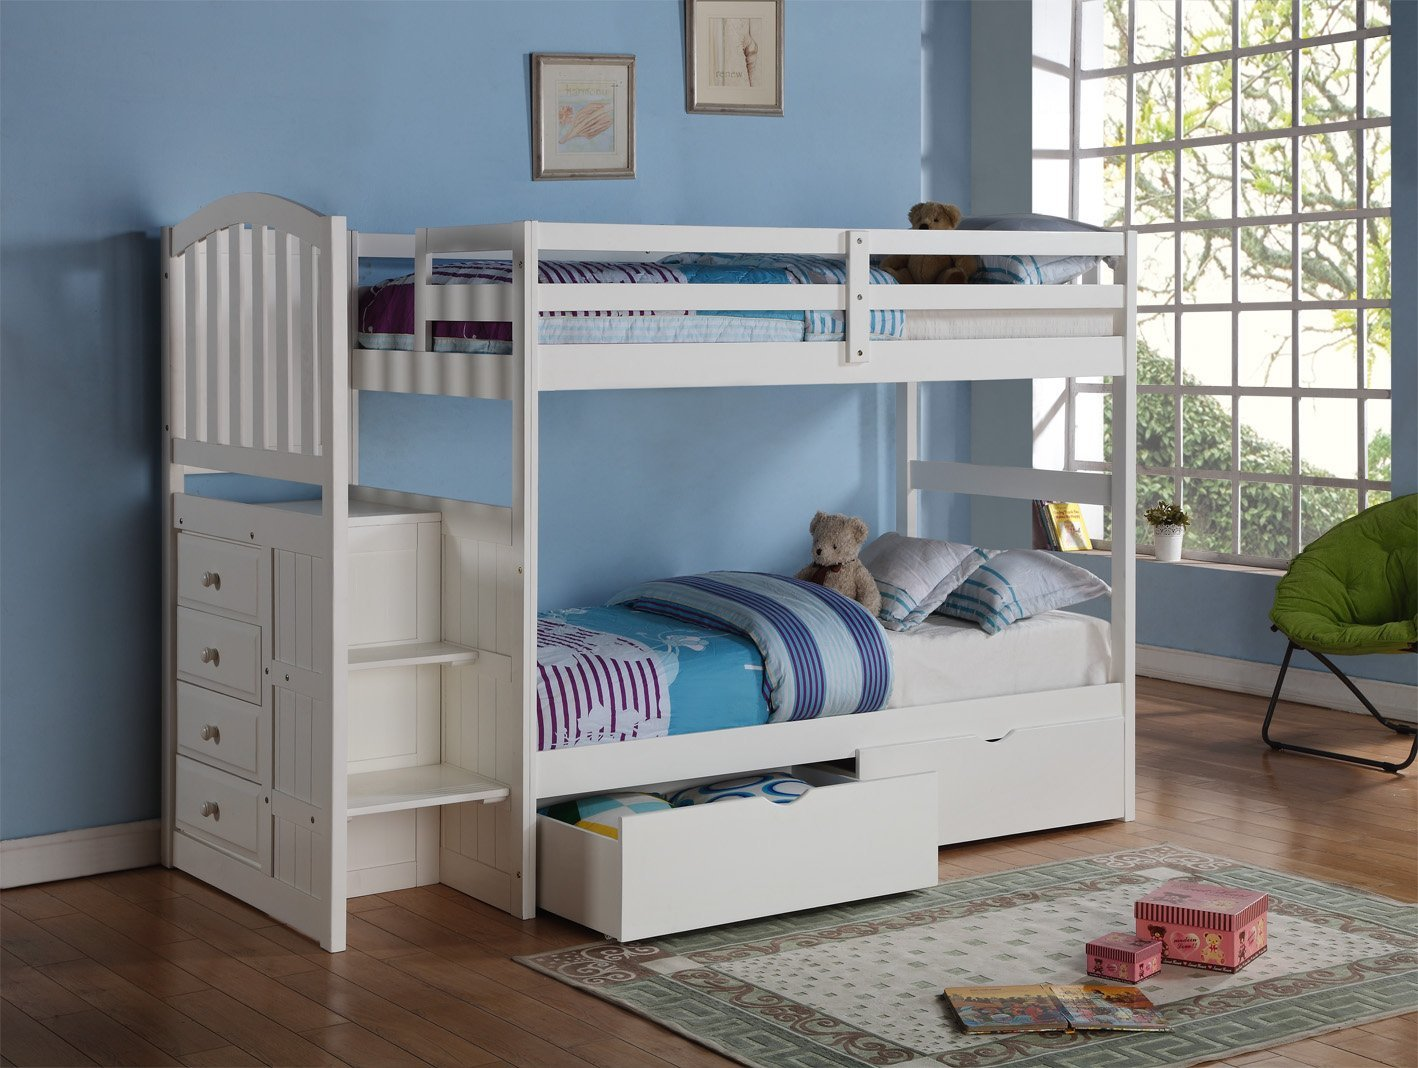 Arch Mission Stairway Bunk Bed in White with Built-in Chest and Under-Bed Drawers